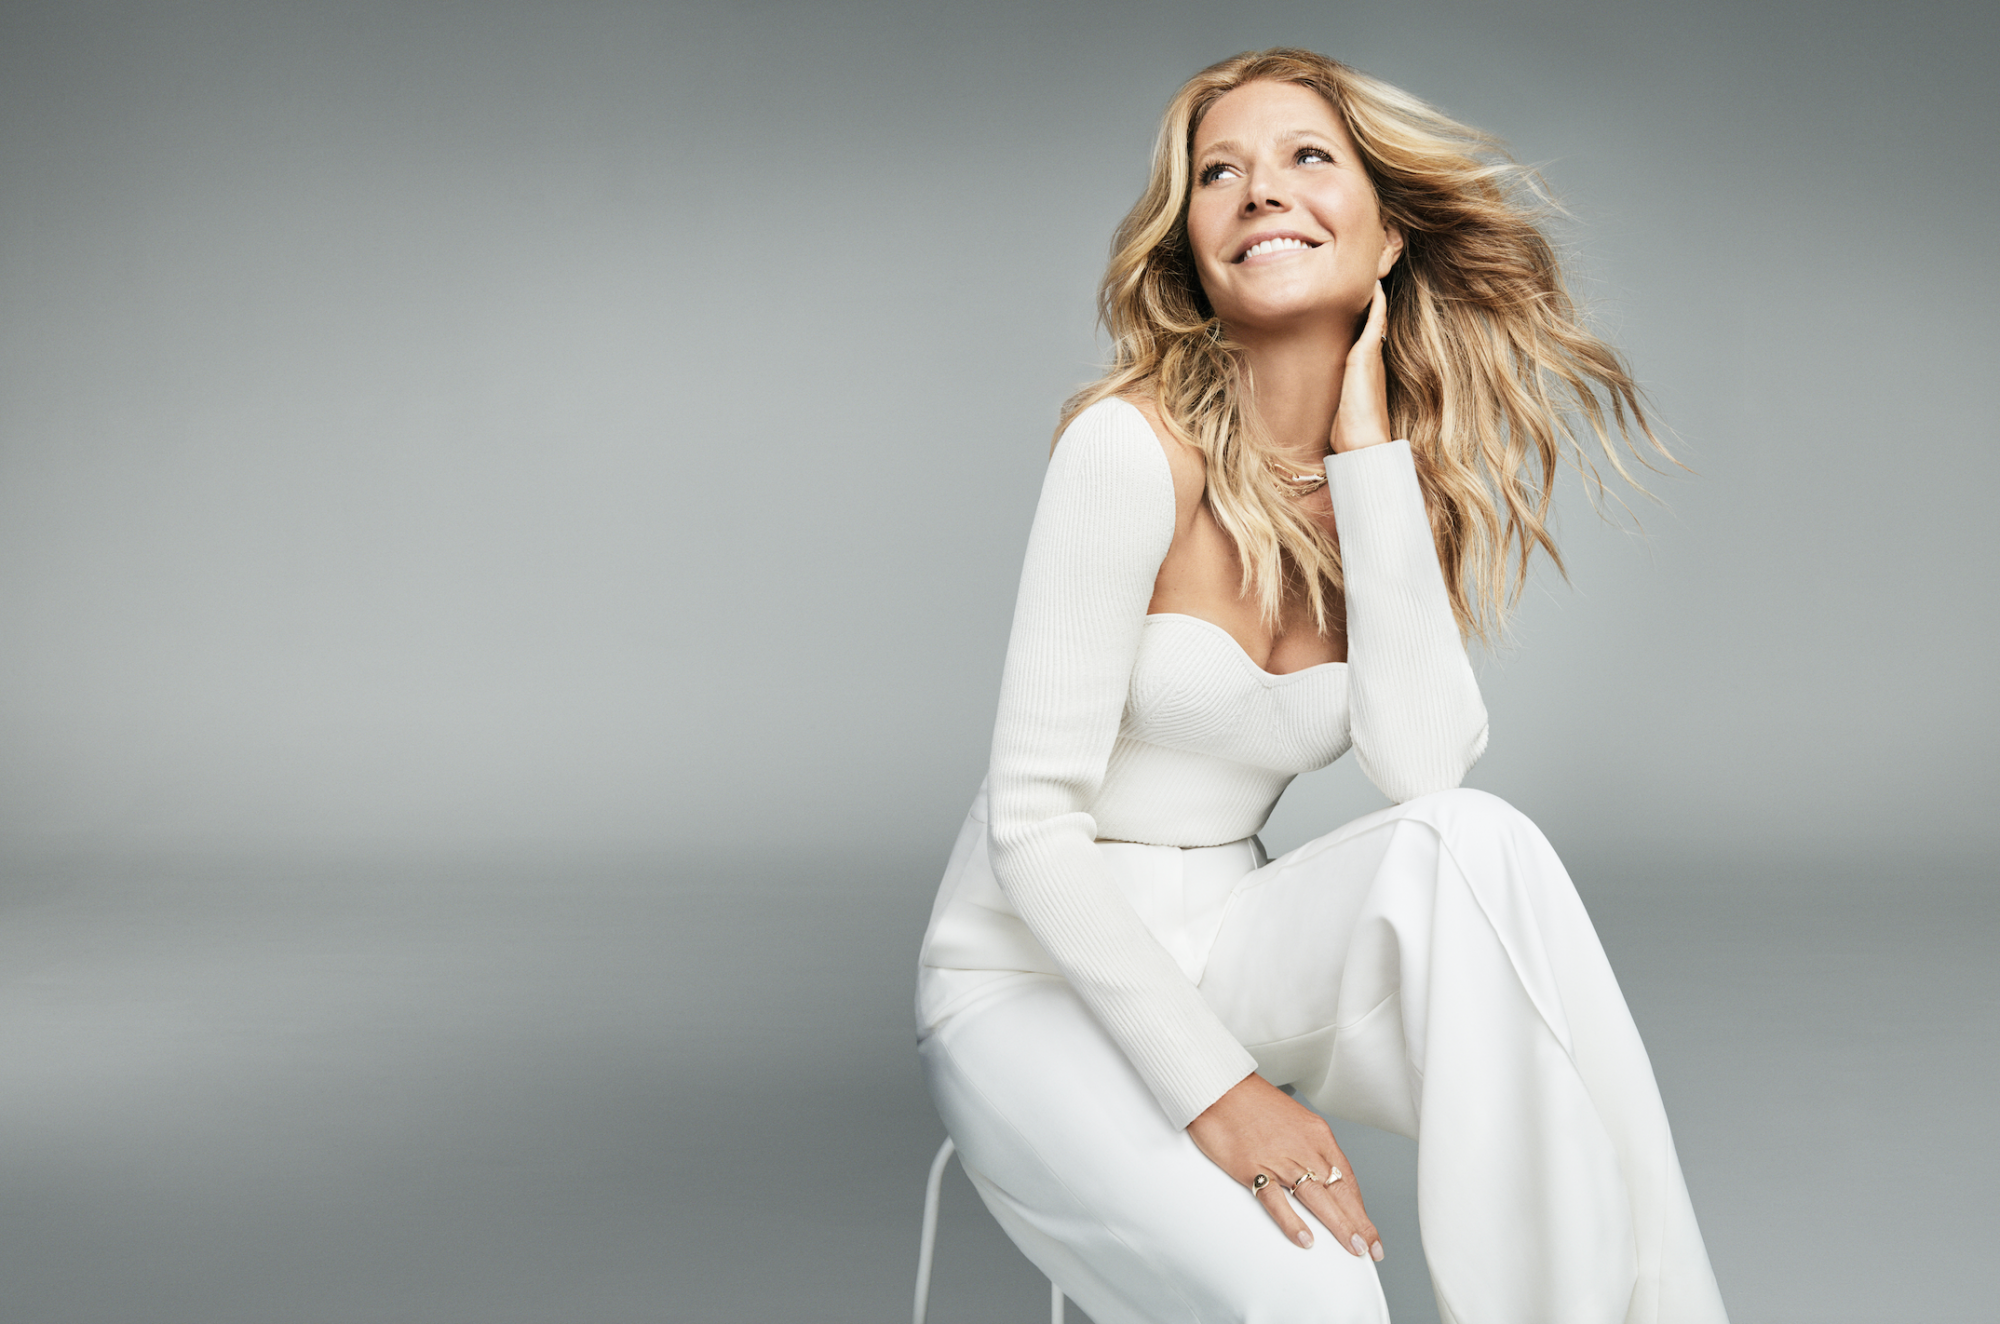 Gwyneth Paltrow on Her Beauty Philosophy, Self-Care Tips and More